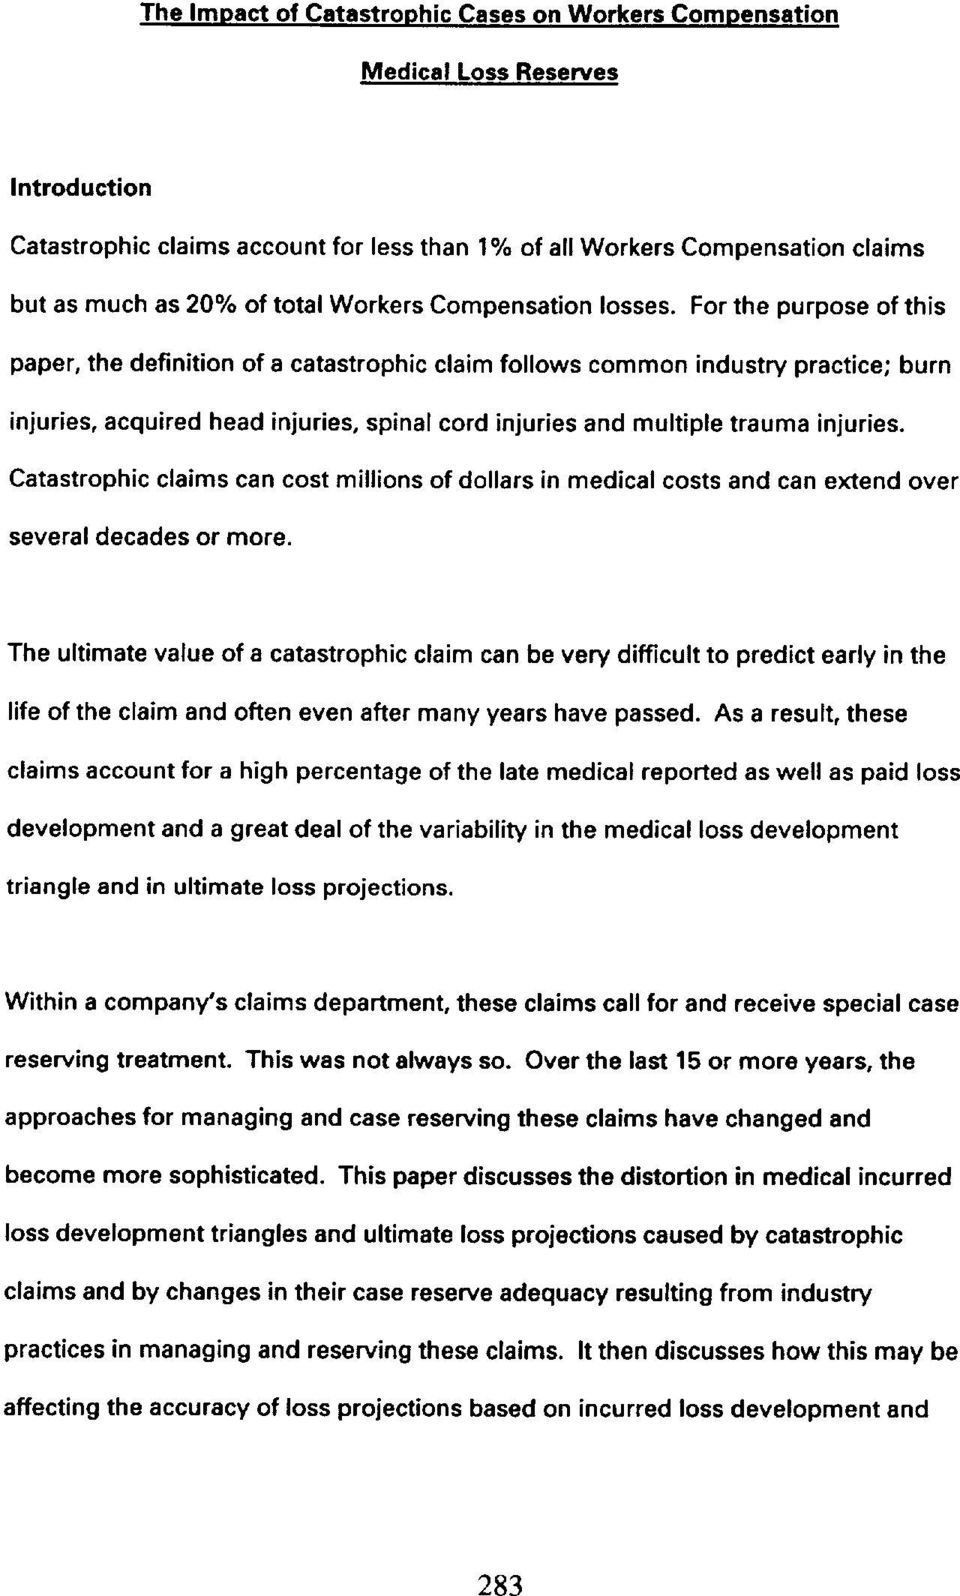 For the purpose of this paper, the definition of a catastrophic claim follows common industry practice; burn injuries, acquired head injuries, spinal cord injuries and multiple trauma injuries.